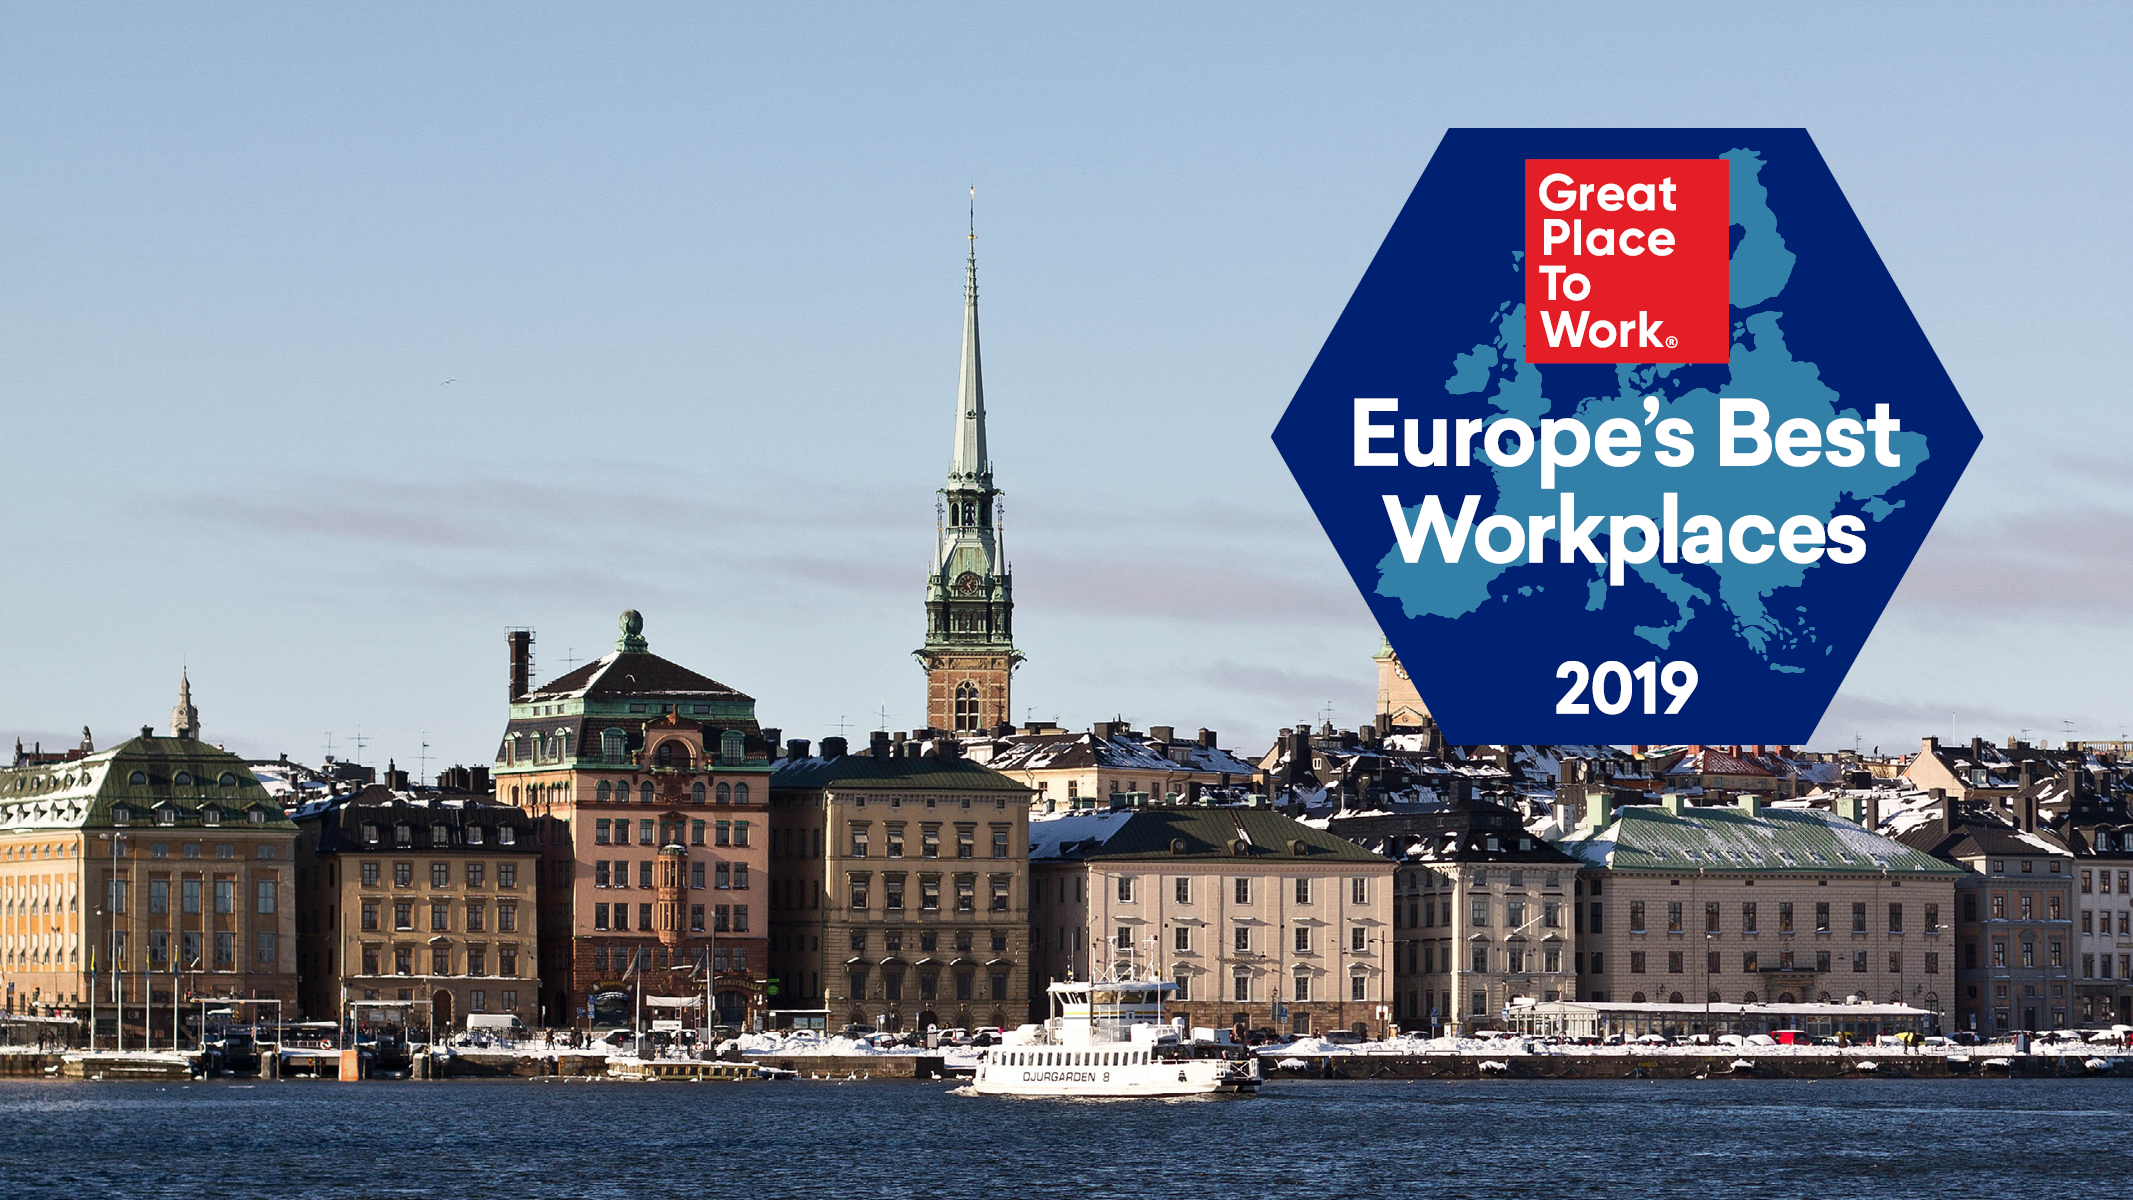 Employees put their ideas to work at the 2019 Best Workplaces™ in Europe